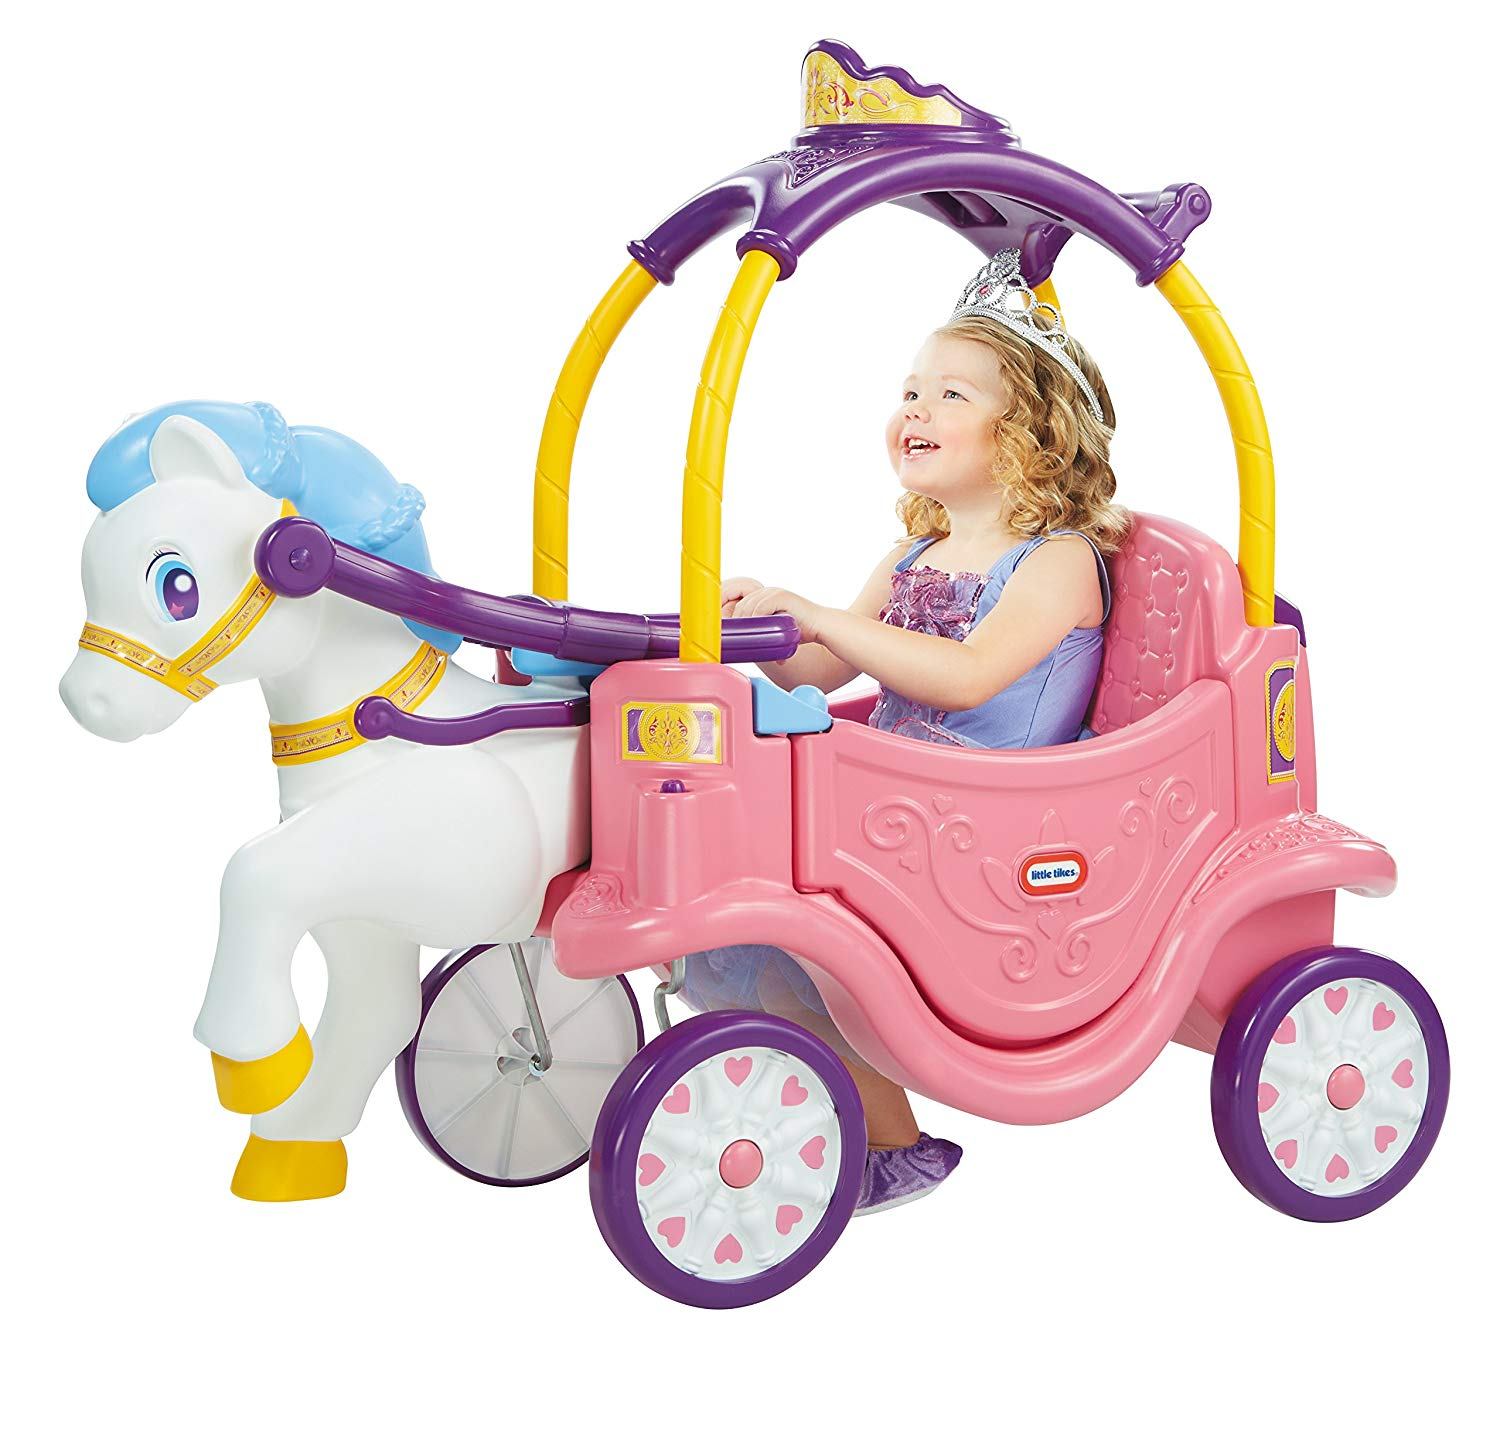 5. Little Tikes Princess Horse & Carriage